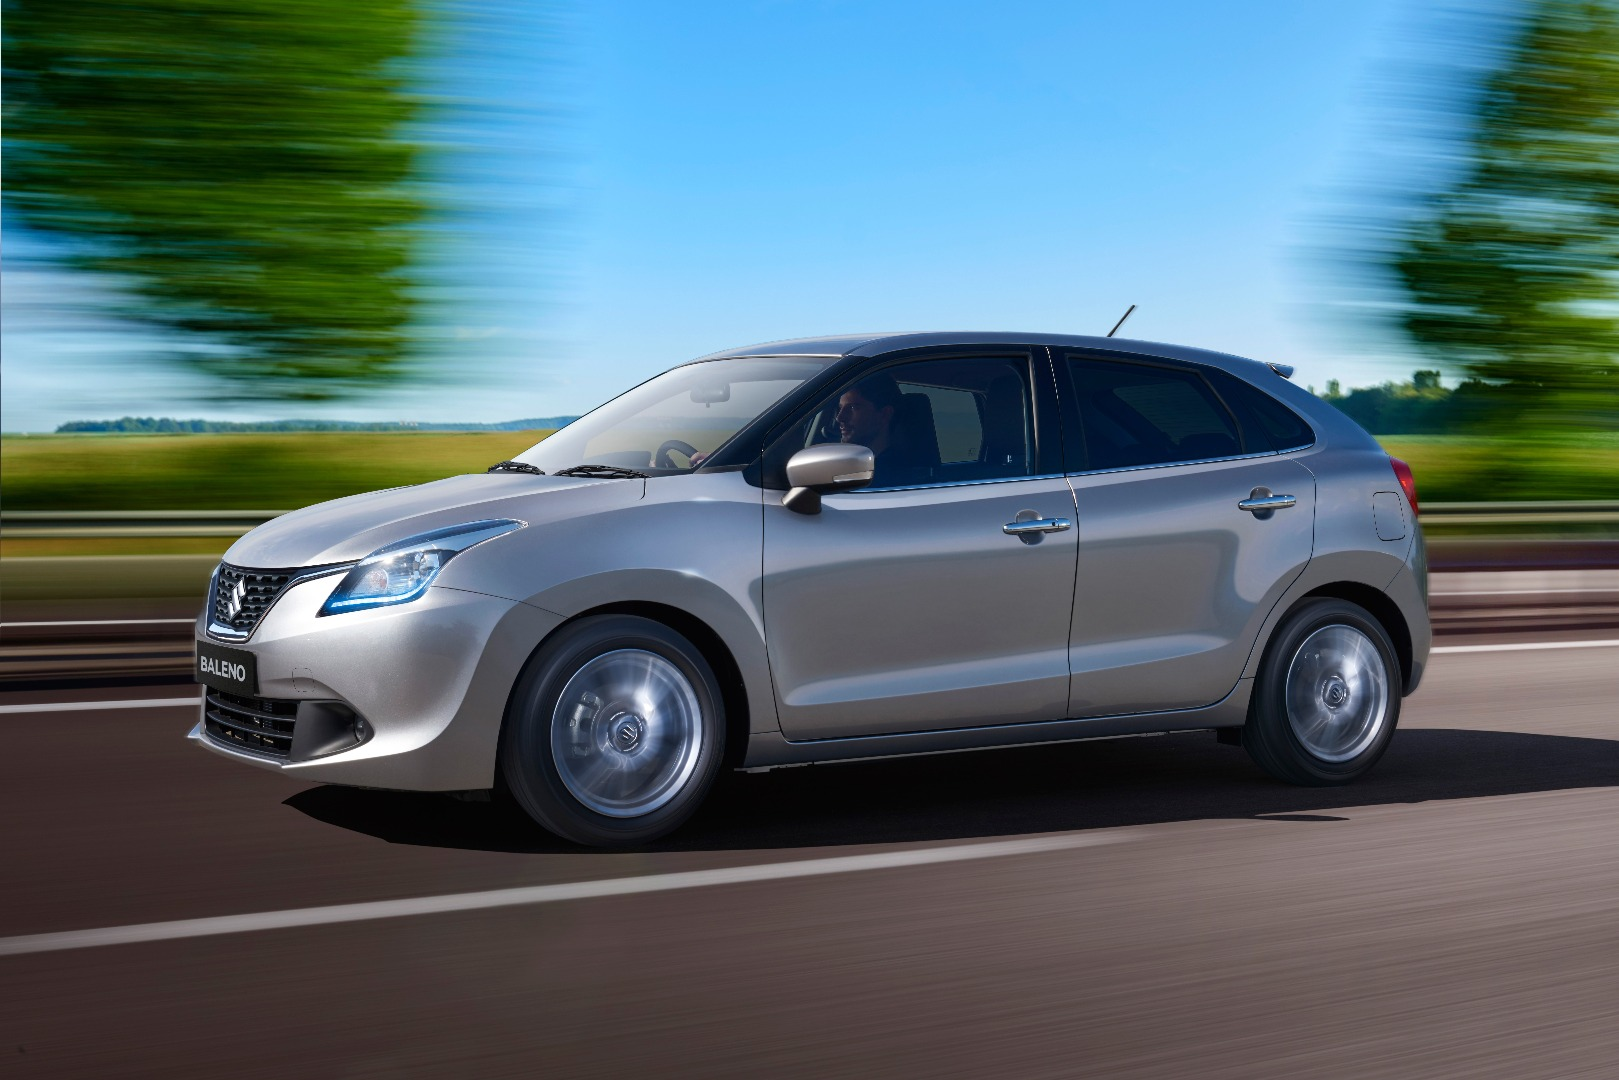 Used Cars For Sale Under 1000 >> News - Suzuki Australia Introduces All-New Baleno